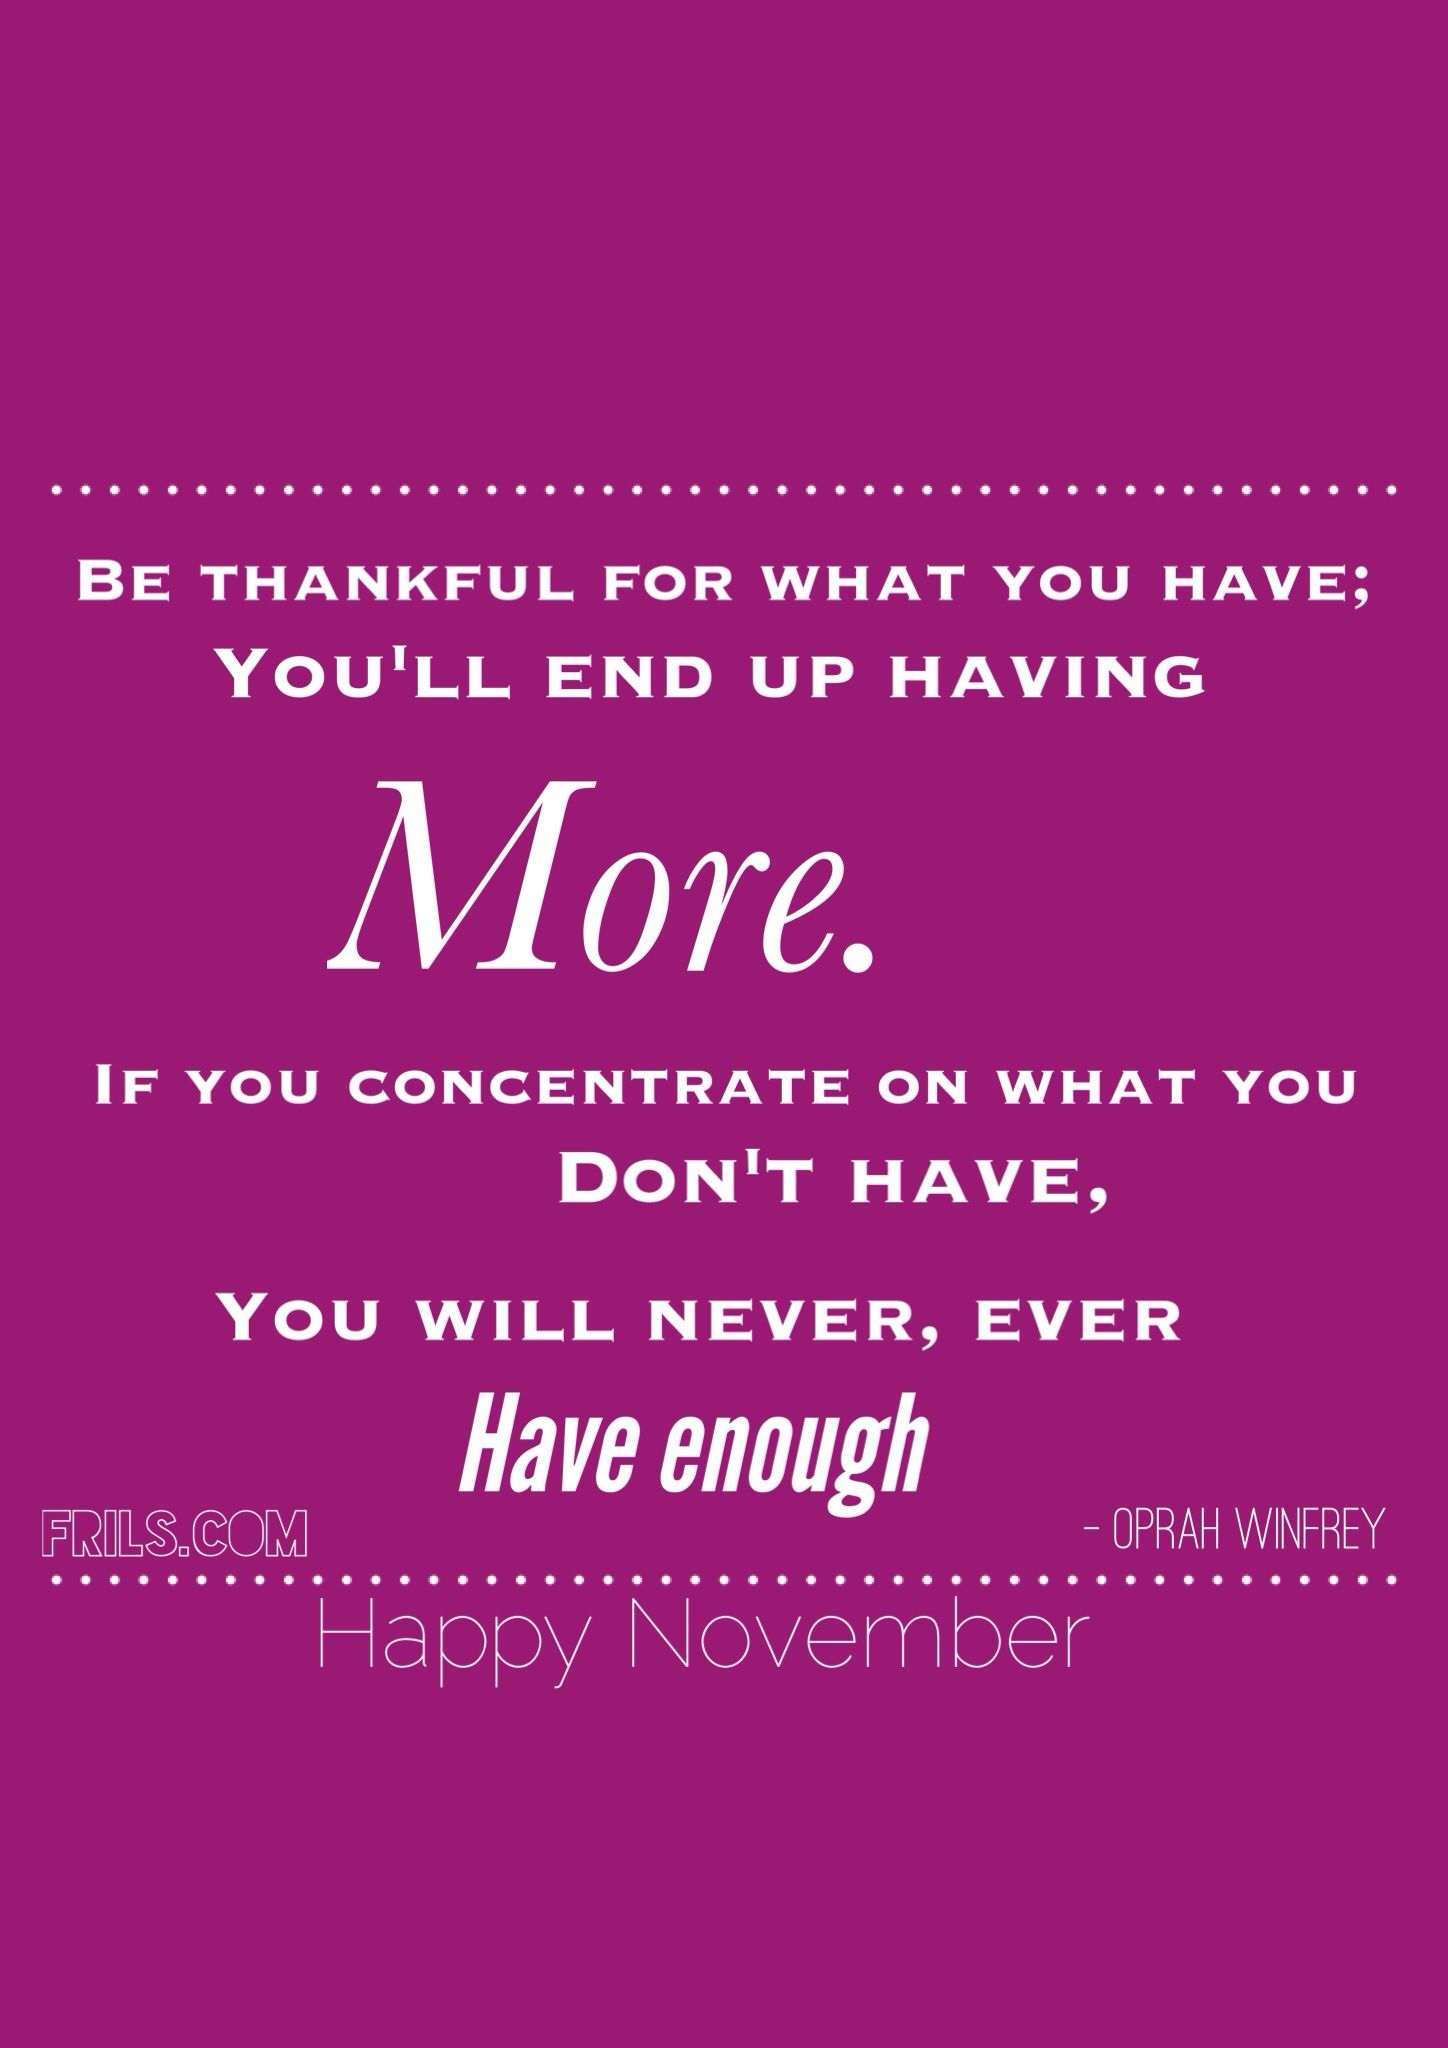 Time to be thankful!